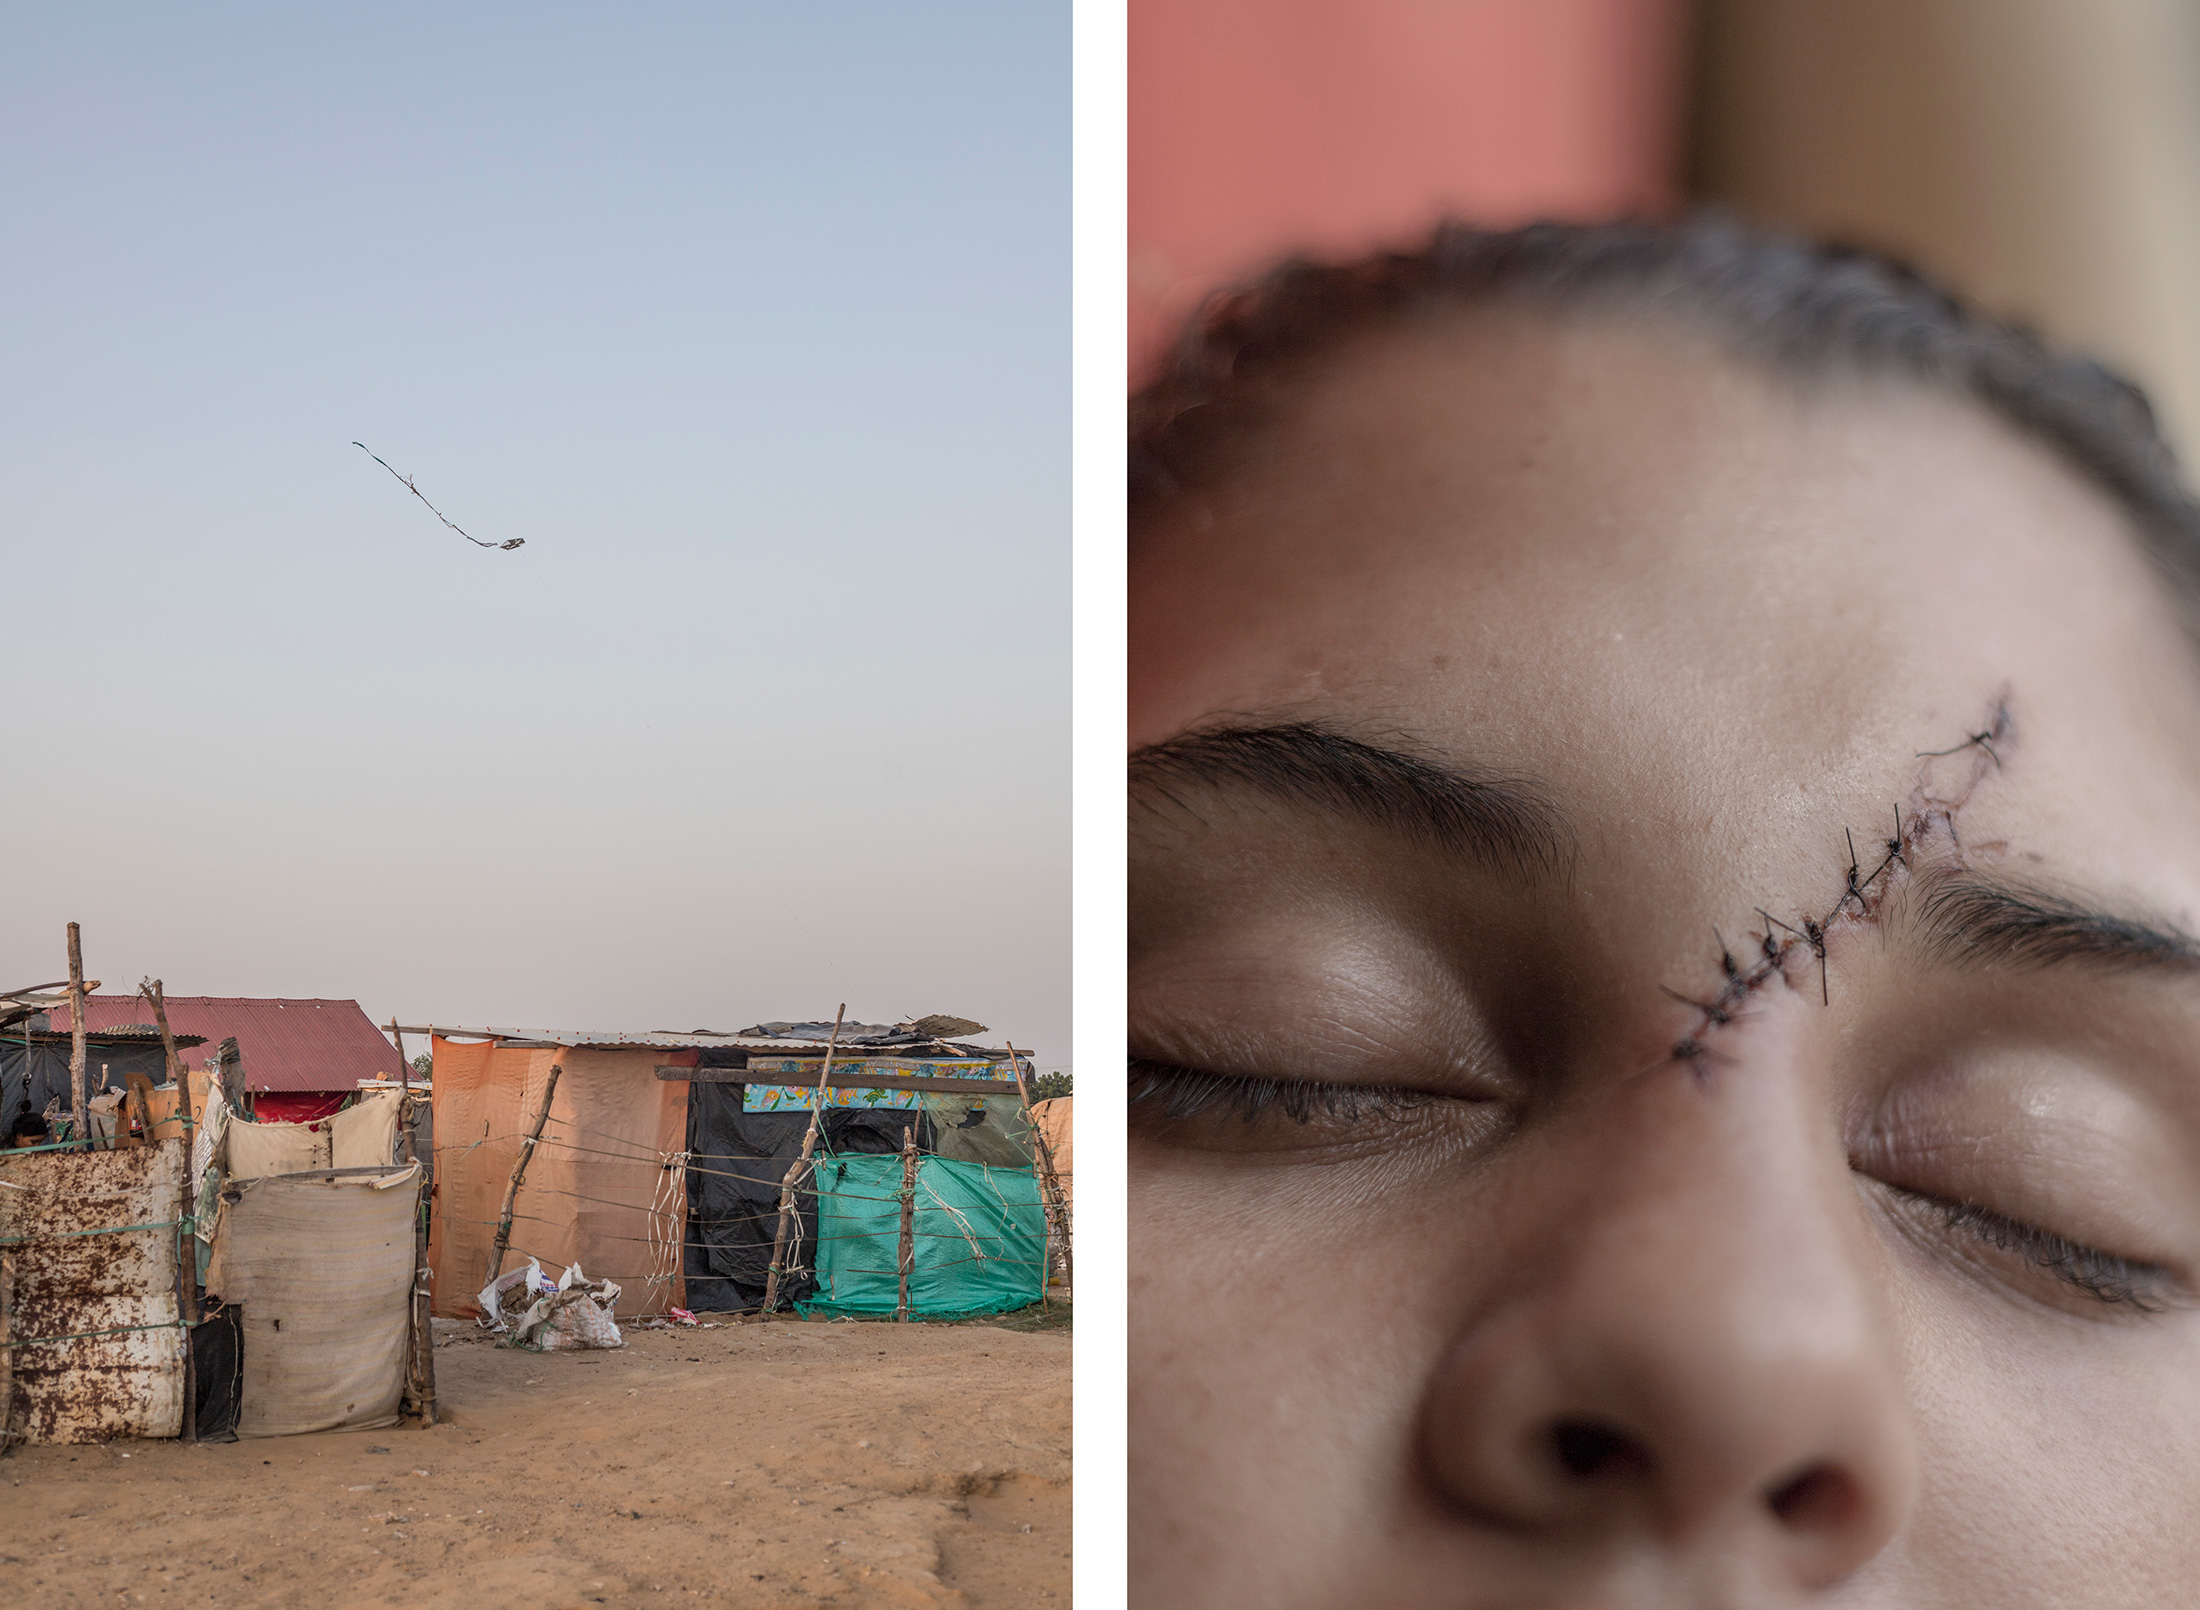 Martina, a teenage Venezuelan migrant. After a man slashed her face with a bottle for refusing his sexual advances, she is now in Colombian government care.